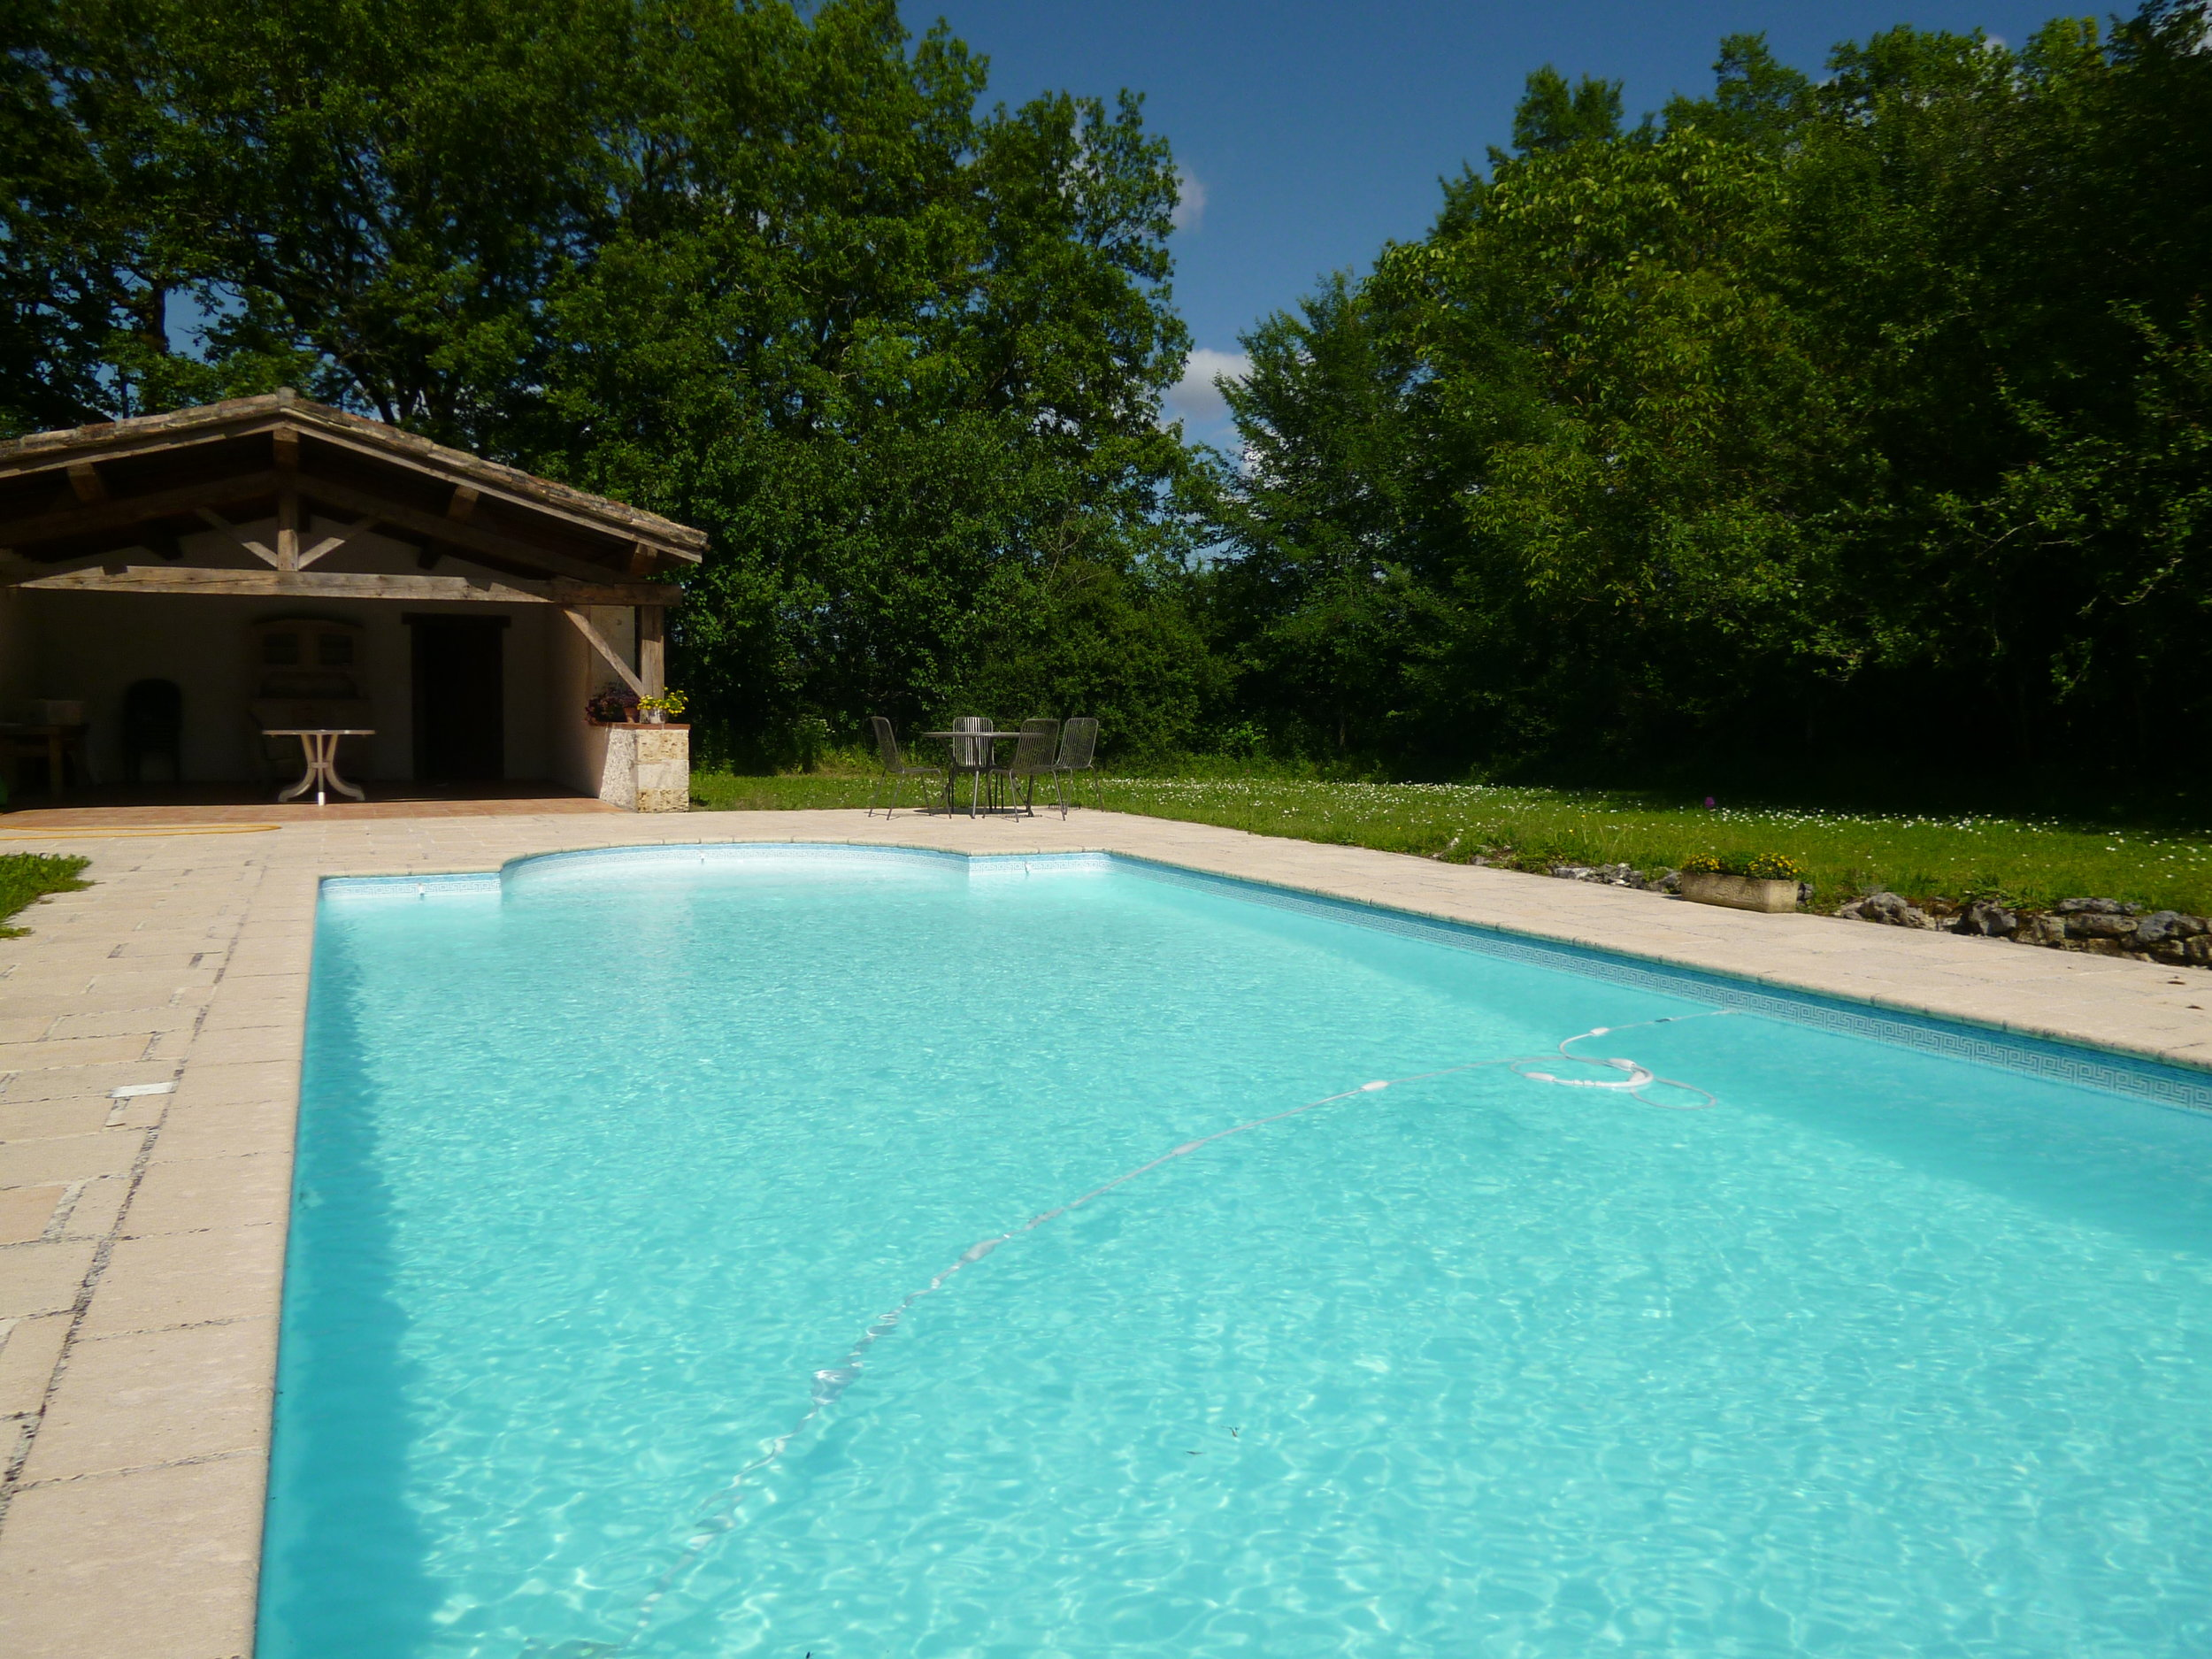 Pool and Pool house, the Roman end.